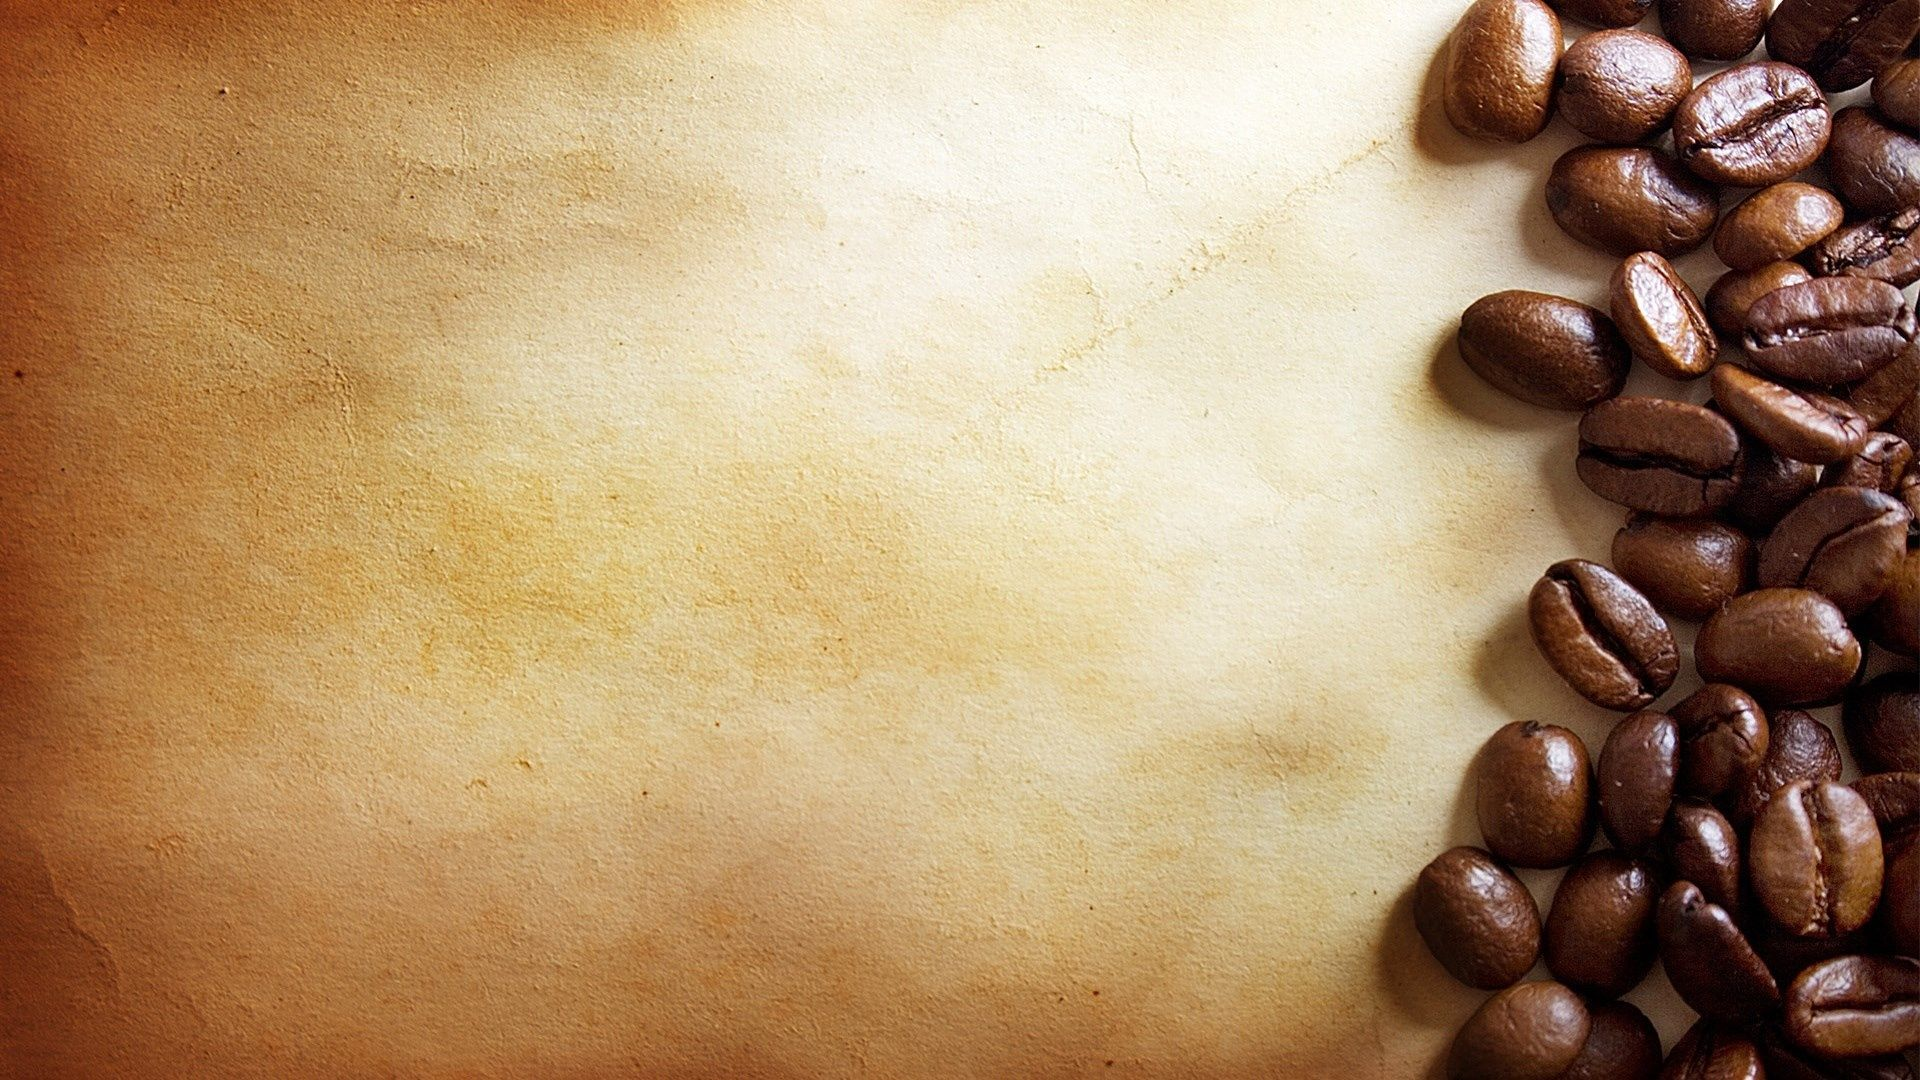 coffee bean food background beige paper bitter a pile backgrounds 1920x1080